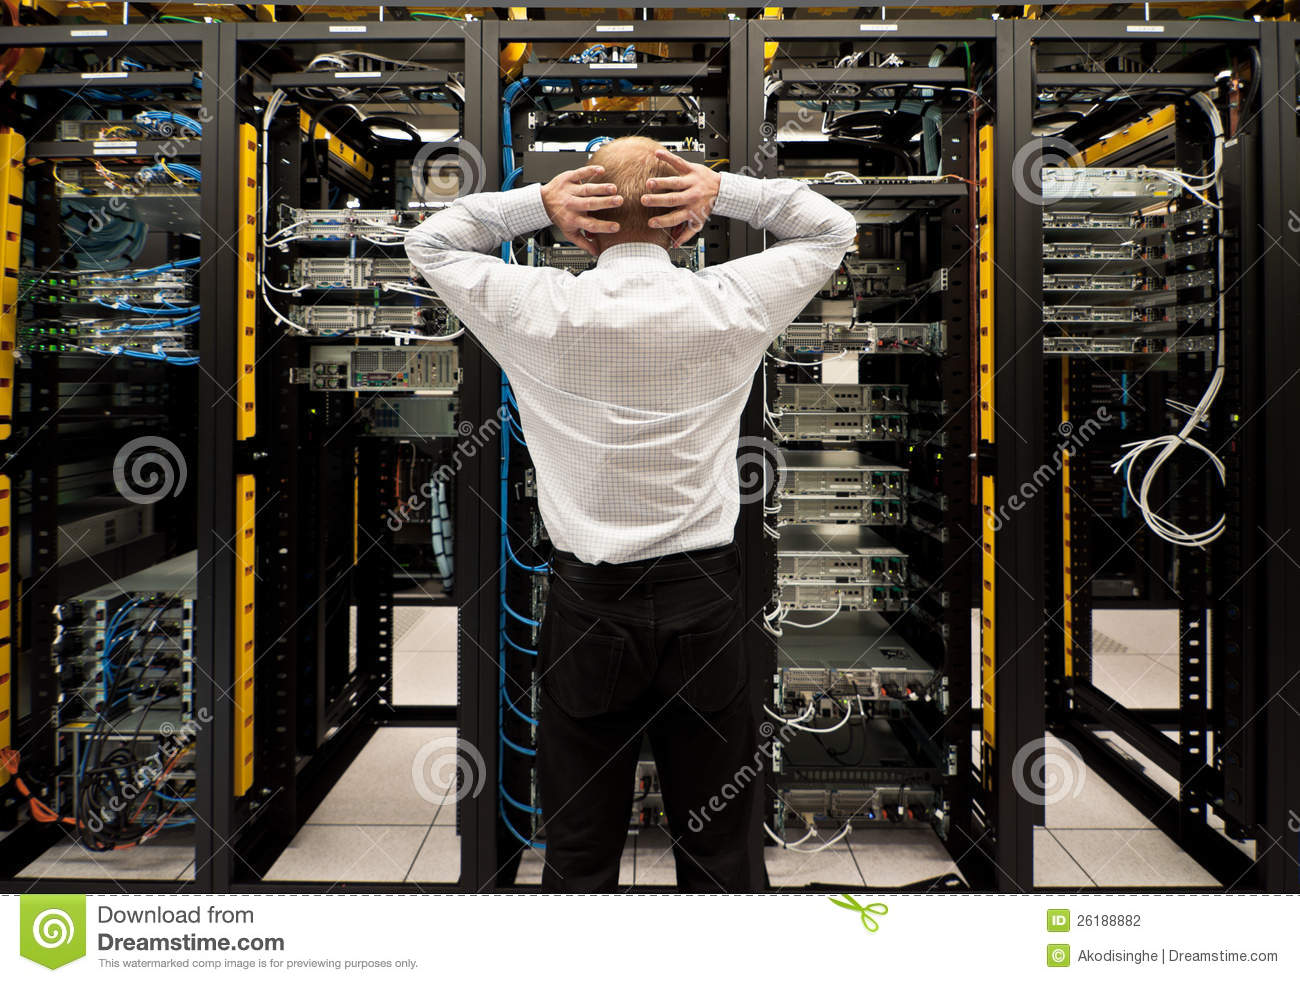 Trouble in datacenter